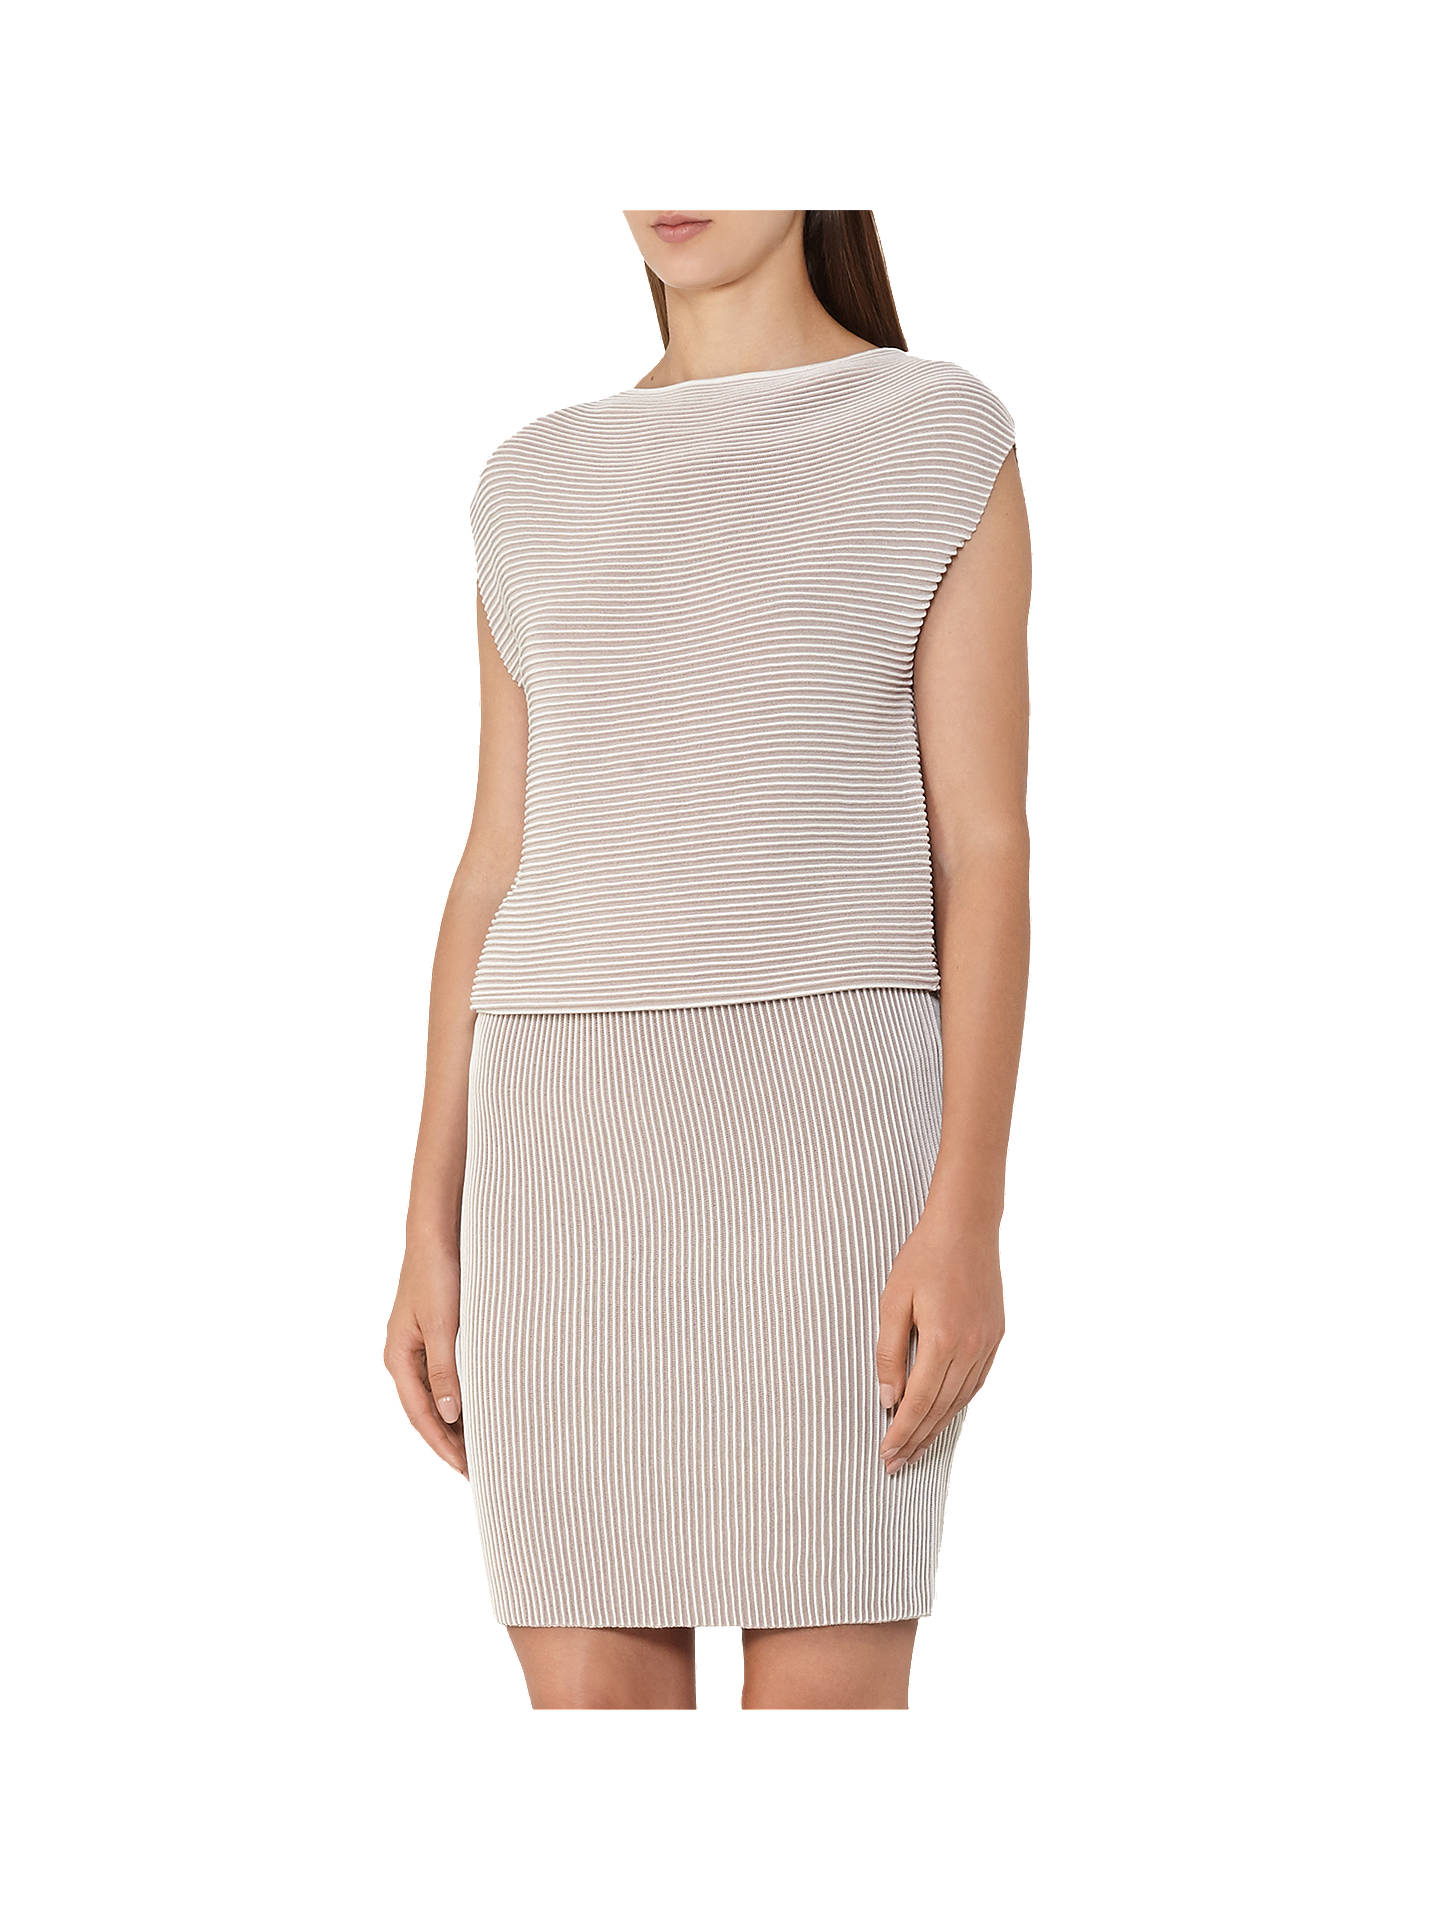 d45befb780a45a Buy Reiss Simone Ripple Stitch Dress, Nude, 6 Online at johnlewis.com ...